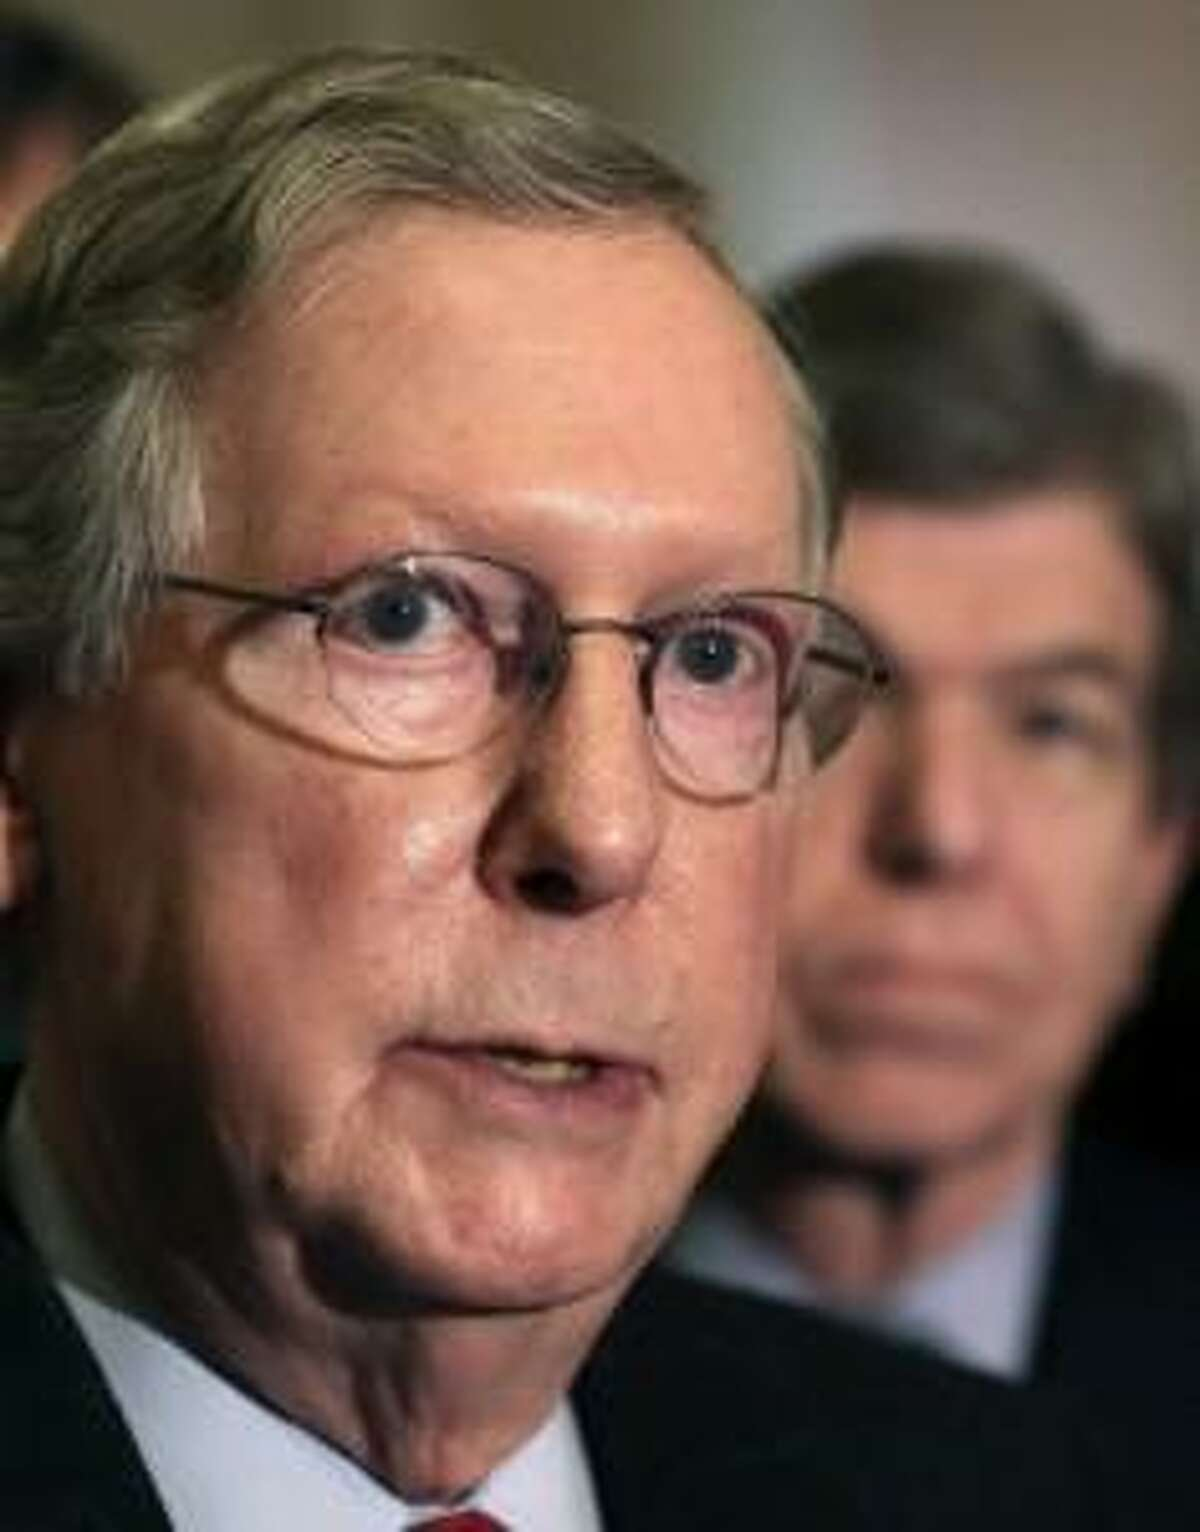 Senate Majority Leader Mitch McConnell is pushing for a vote this week on Senate Republican health care plan.